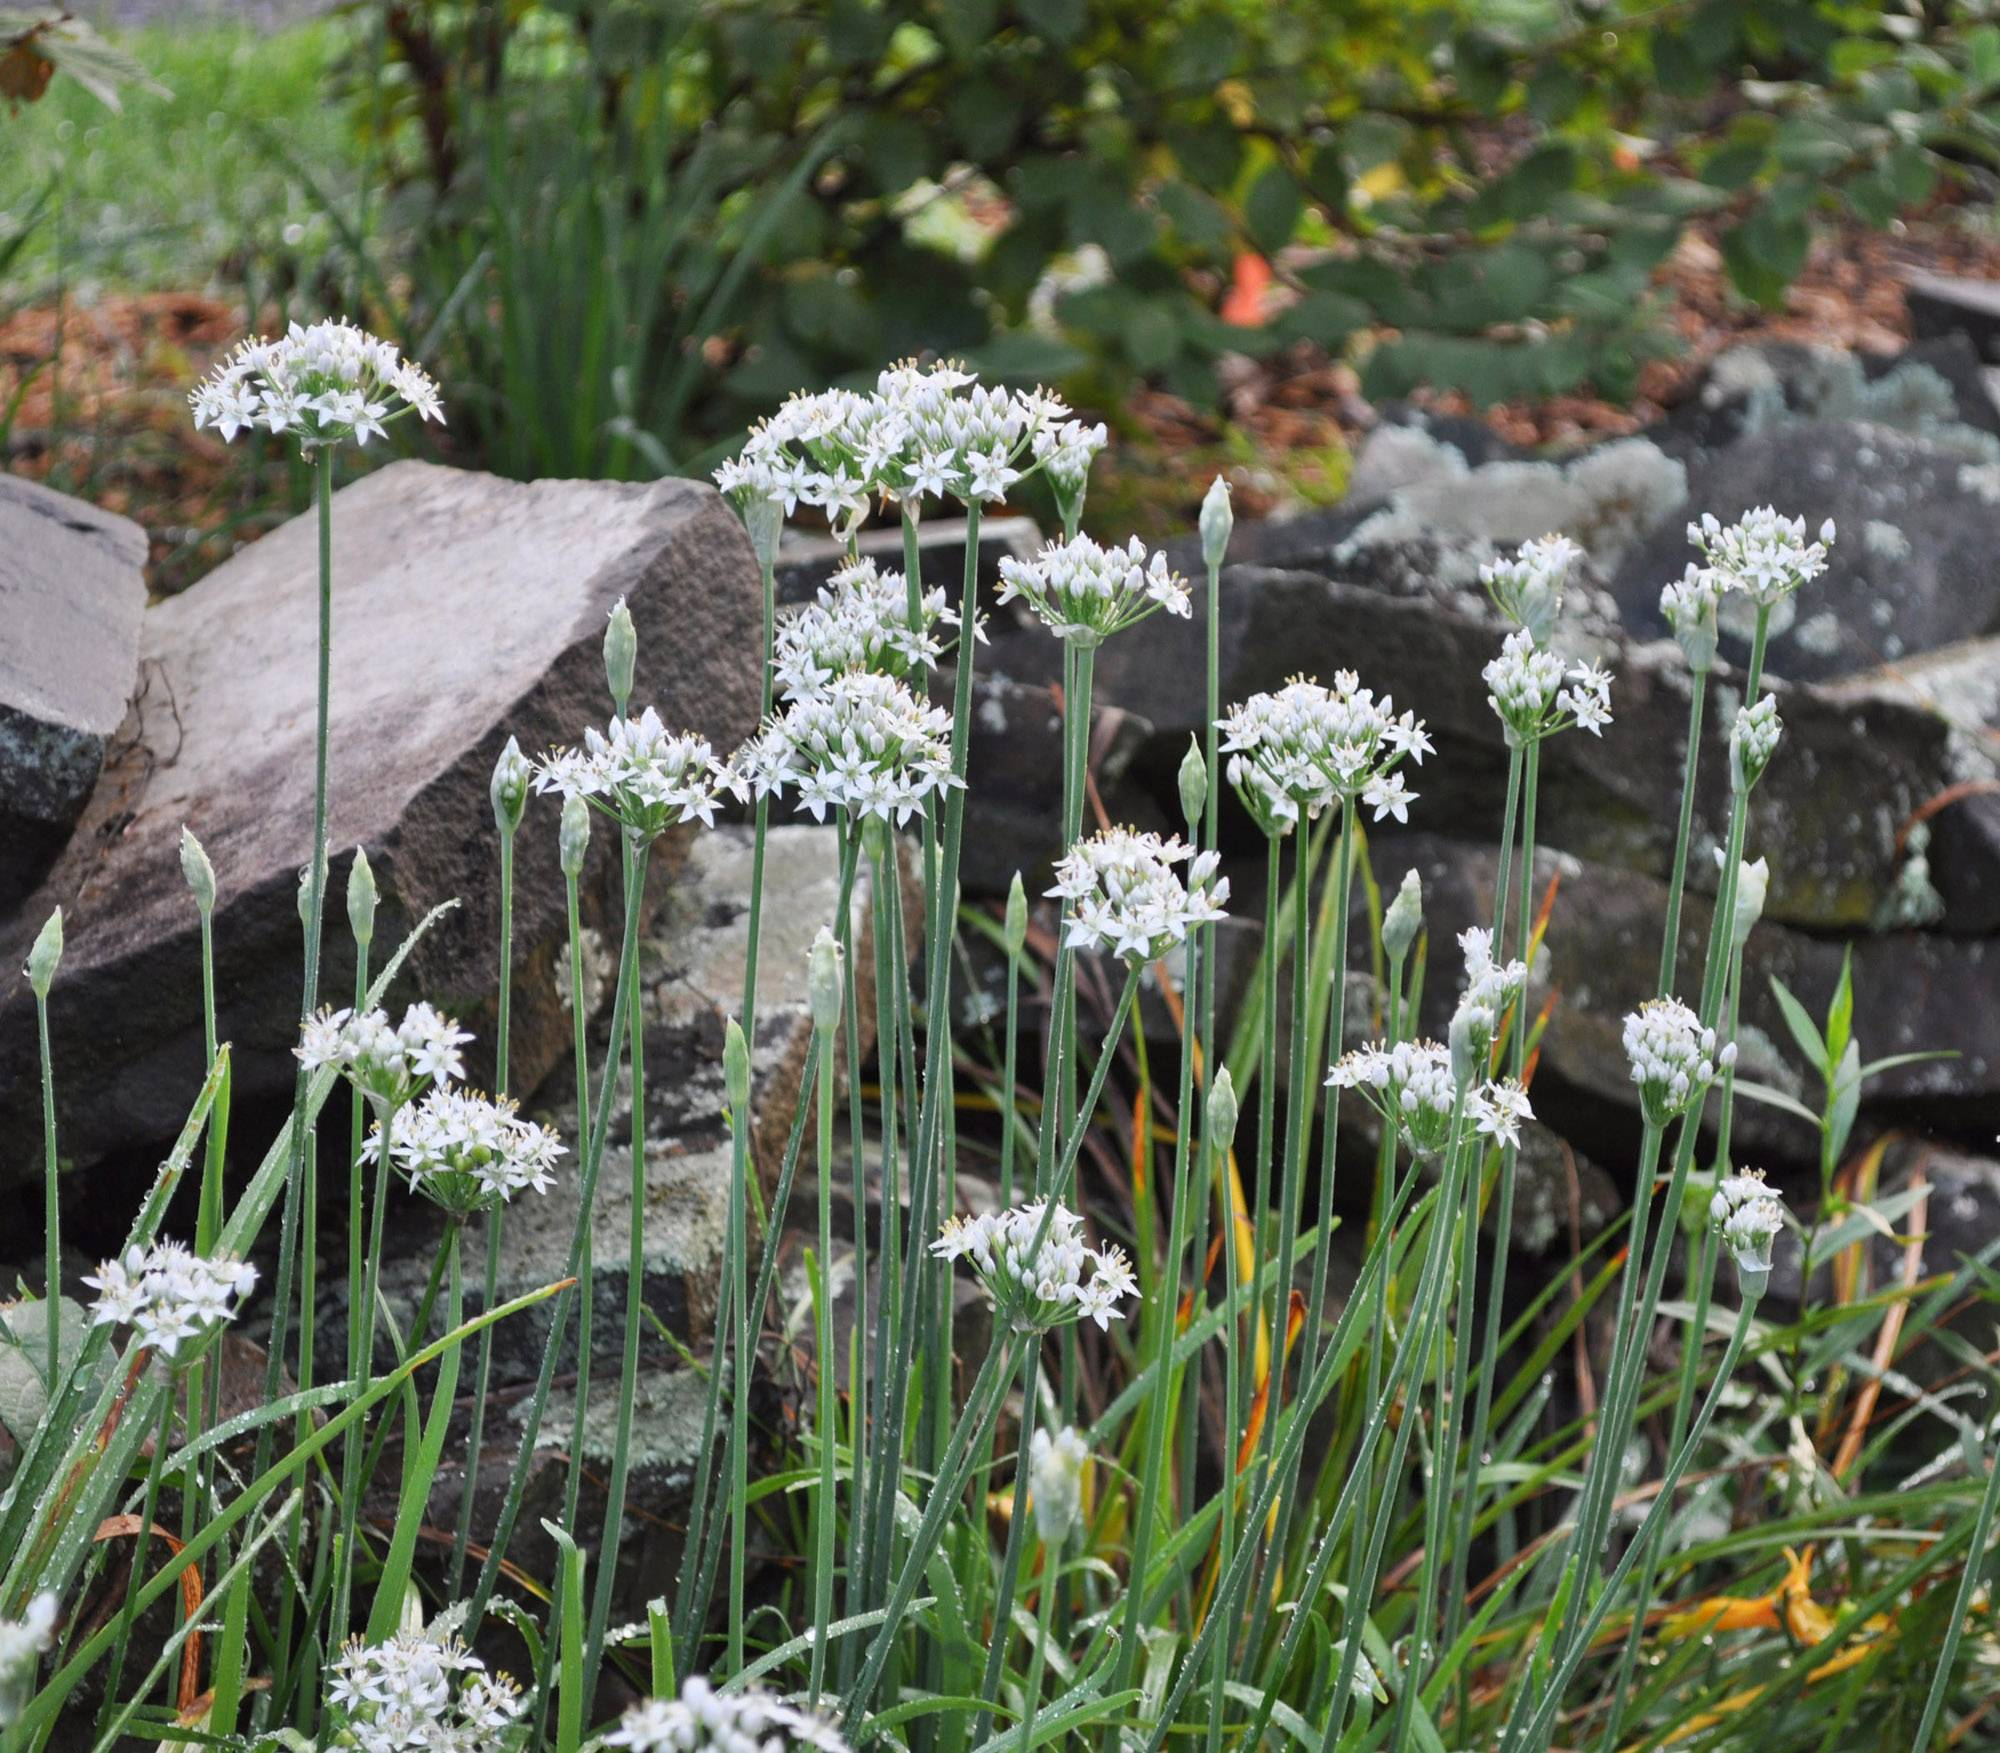 Garlic chives thrive best in full sun and moderately rich soil.